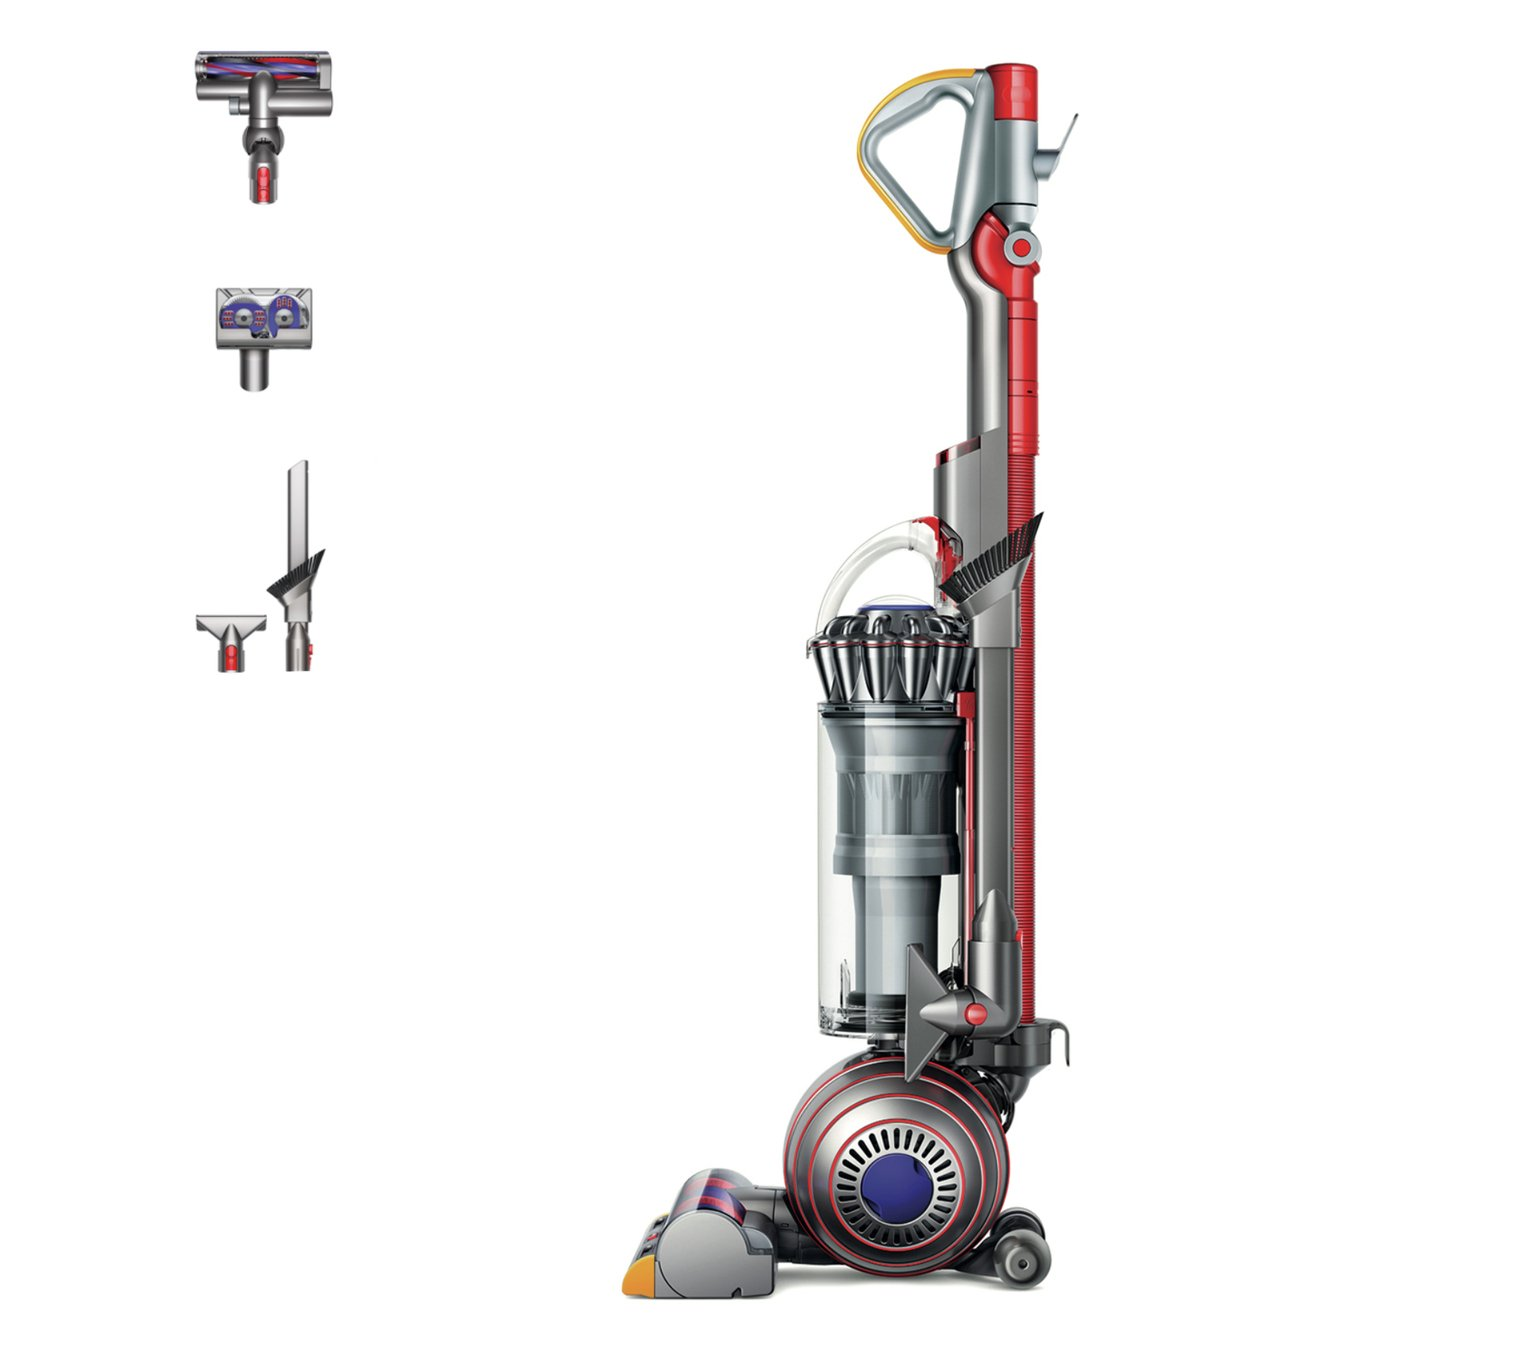 Image of Dyson Ball Animal 2 Bagless Upright Vacuum Cleaner